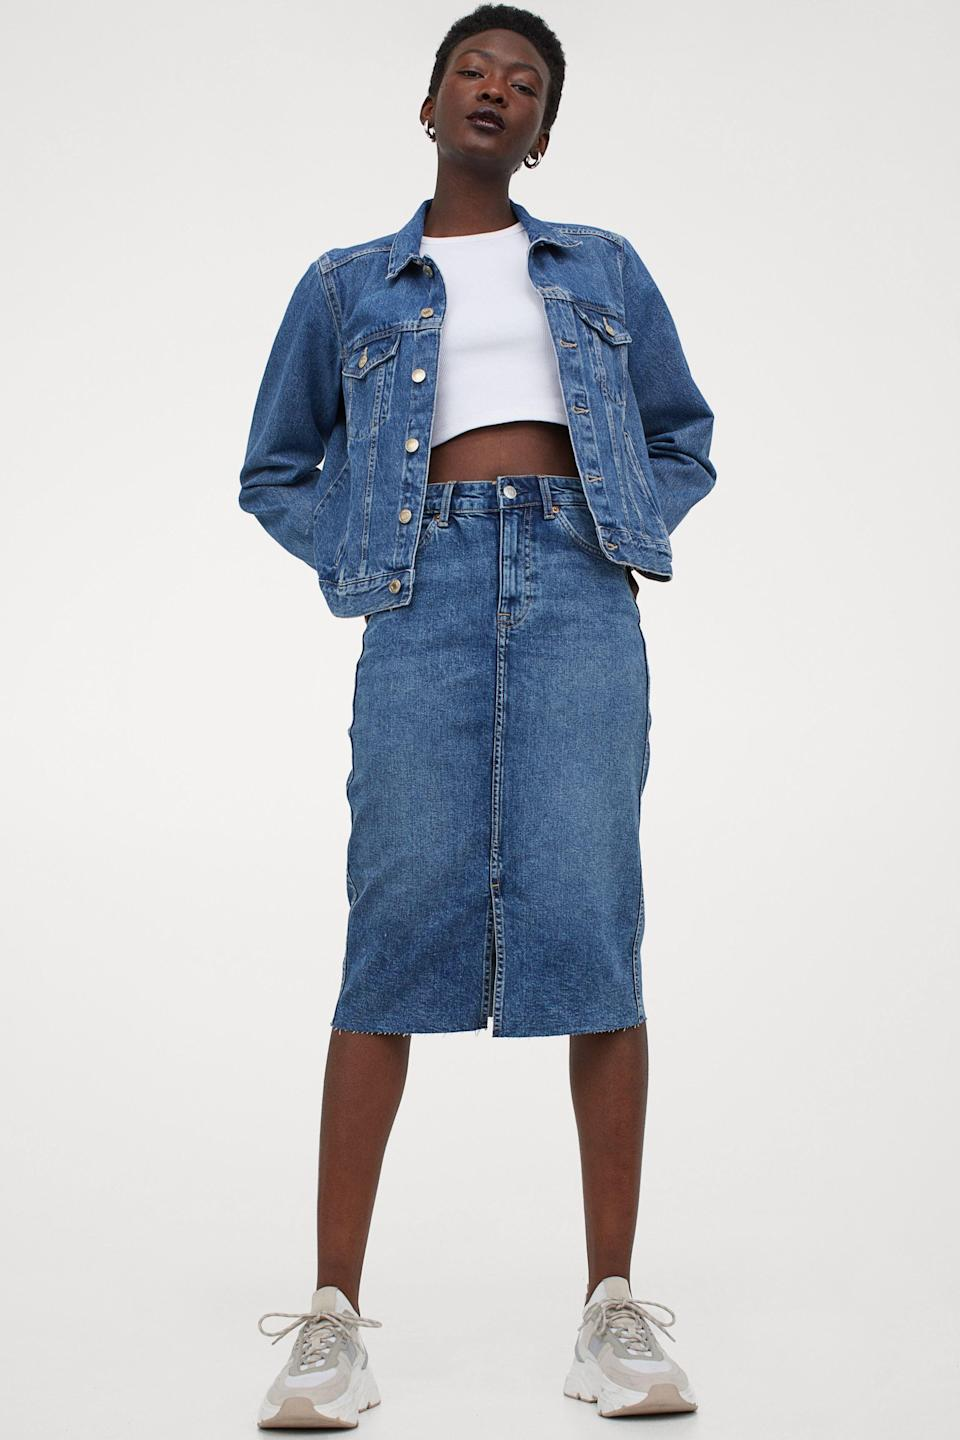 """<p><strong>H&M</strong></p><p>hm.com</p><p><strong>$19.99</strong></p><p><a href=""""https://go.redirectingat.com?id=74968X1596630&url=https%3A%2F%2Fwww2.hm.com%2Fen_us%2Fproductpage.0905132002.html&sref=https%3A%2F%2Fwww.prevention.com%2Fbeauty%2Fstyle%2Fg37148346%2Fbest-jean-jackets-for-women%2F"""" rel=""""nofollow noopener"""" target=""""_blank"""" data-ylk=""""slk:Shop Now"""" class=""""link rapid-noclick-resp"""">Shop Now</a></p><p>""""The nice thing with jean jackets is that they don't have to be from a high-end designer to give a great look,"""" says Brown. And this <strong>H&M option only costs $20</strong>, is made partly from recycled cotton, and comes in three colors (light wash, denim blue, and black.) You can't go wrong with this pick!</p>"""